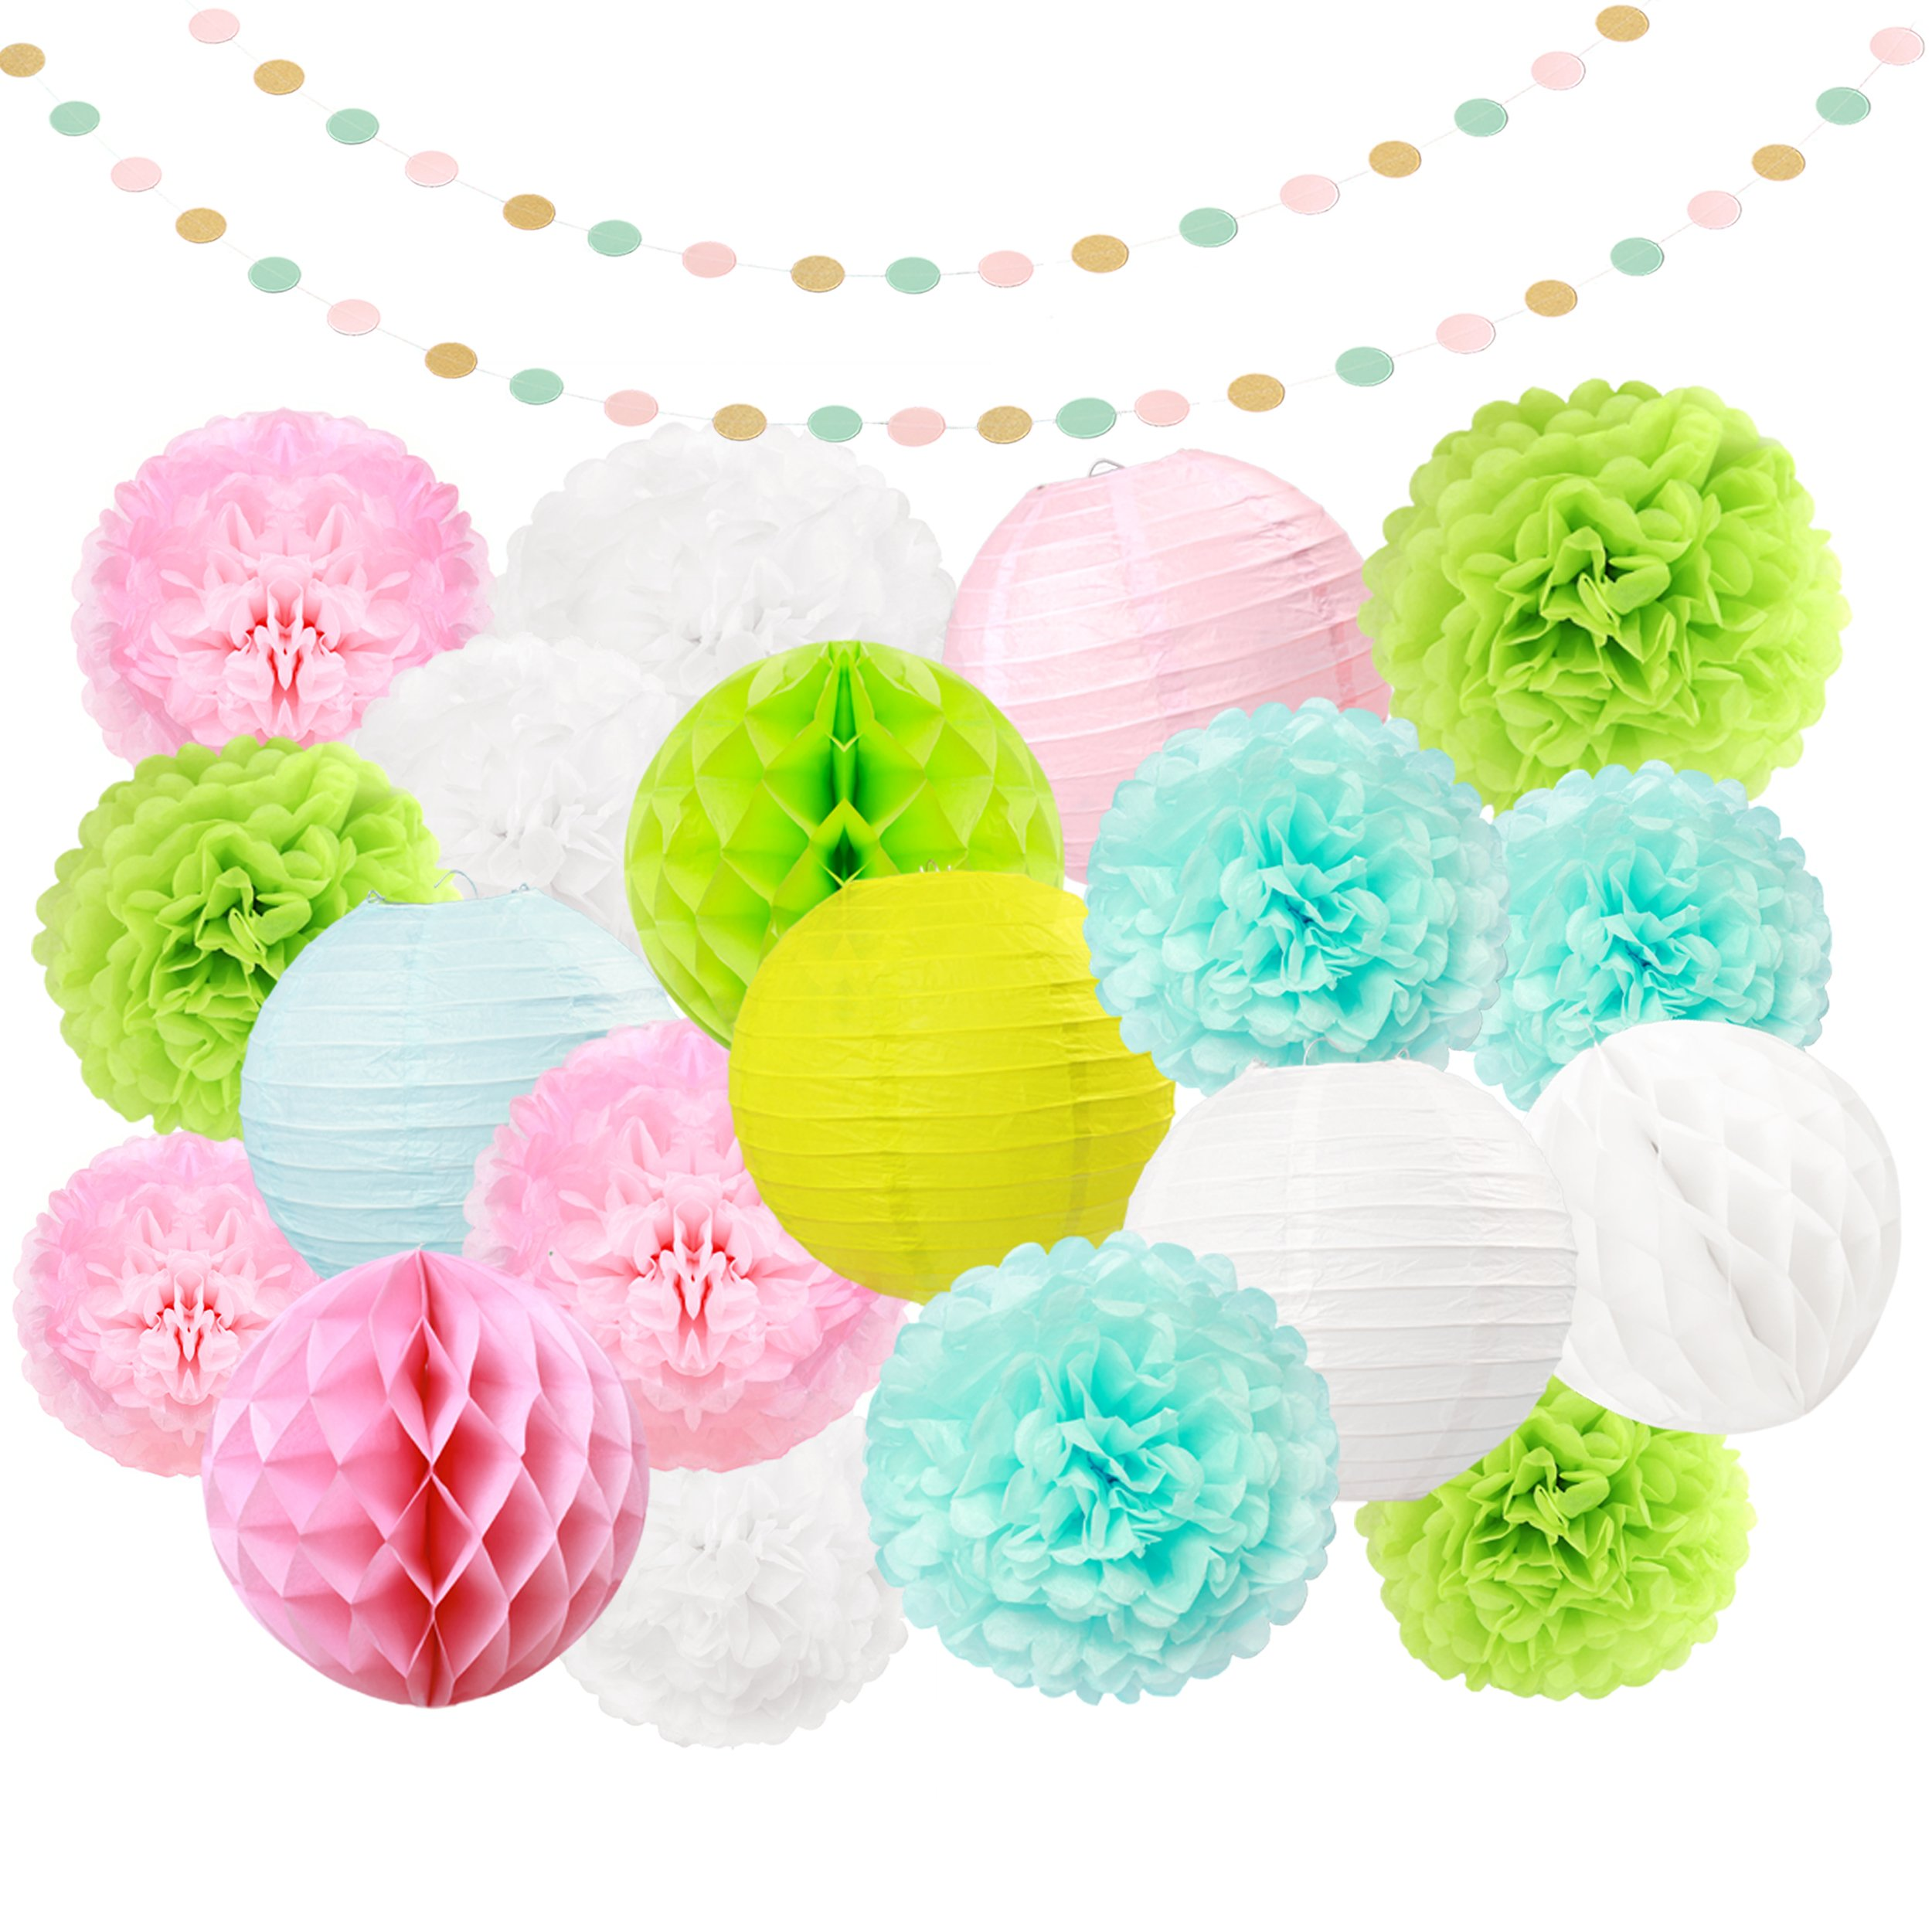 LyButty 21 Pcs Tissue Paper Pom Poms Flowers Paper Honeycomb balls Paper Lanterns Polka Dot Garland Hanging Party Supplies (Apple Green Light Pink Light Blue White) by LyButty